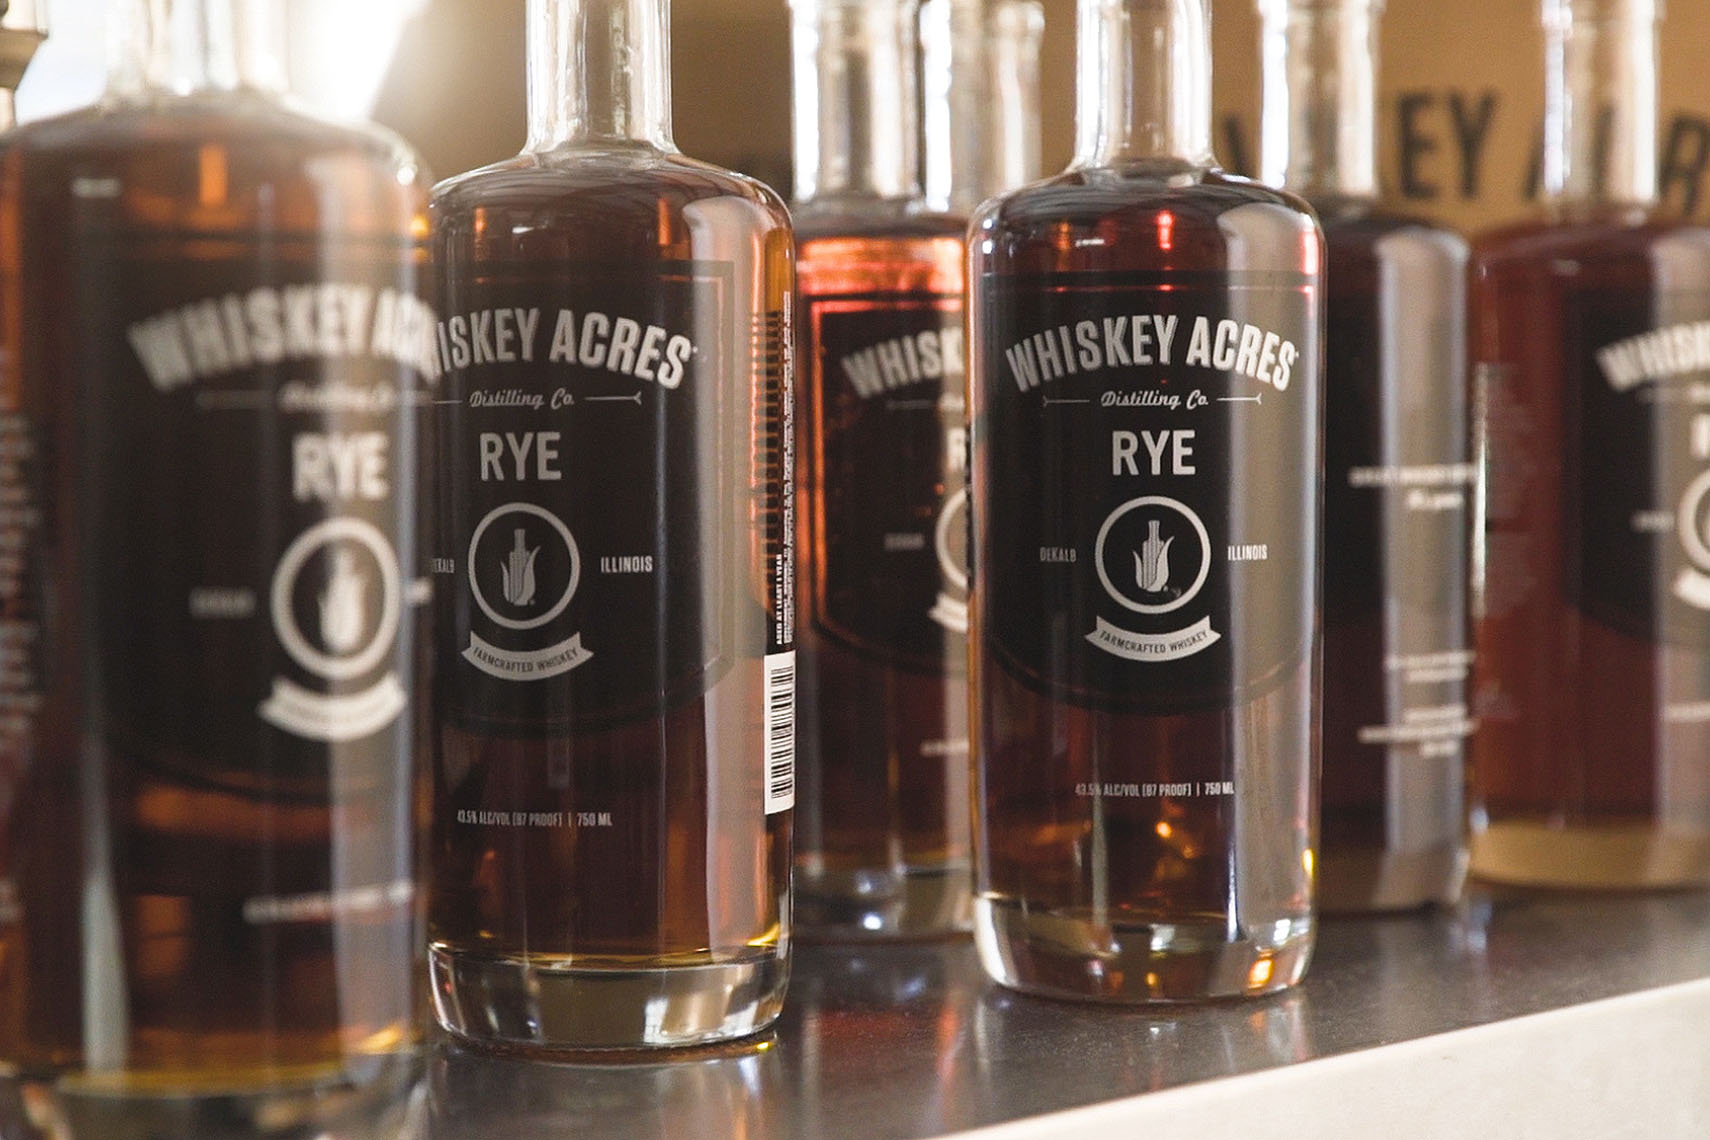 Whiskey Acres bottles | Whiskey Acres Distillery | John Fedele Agricultural Photography